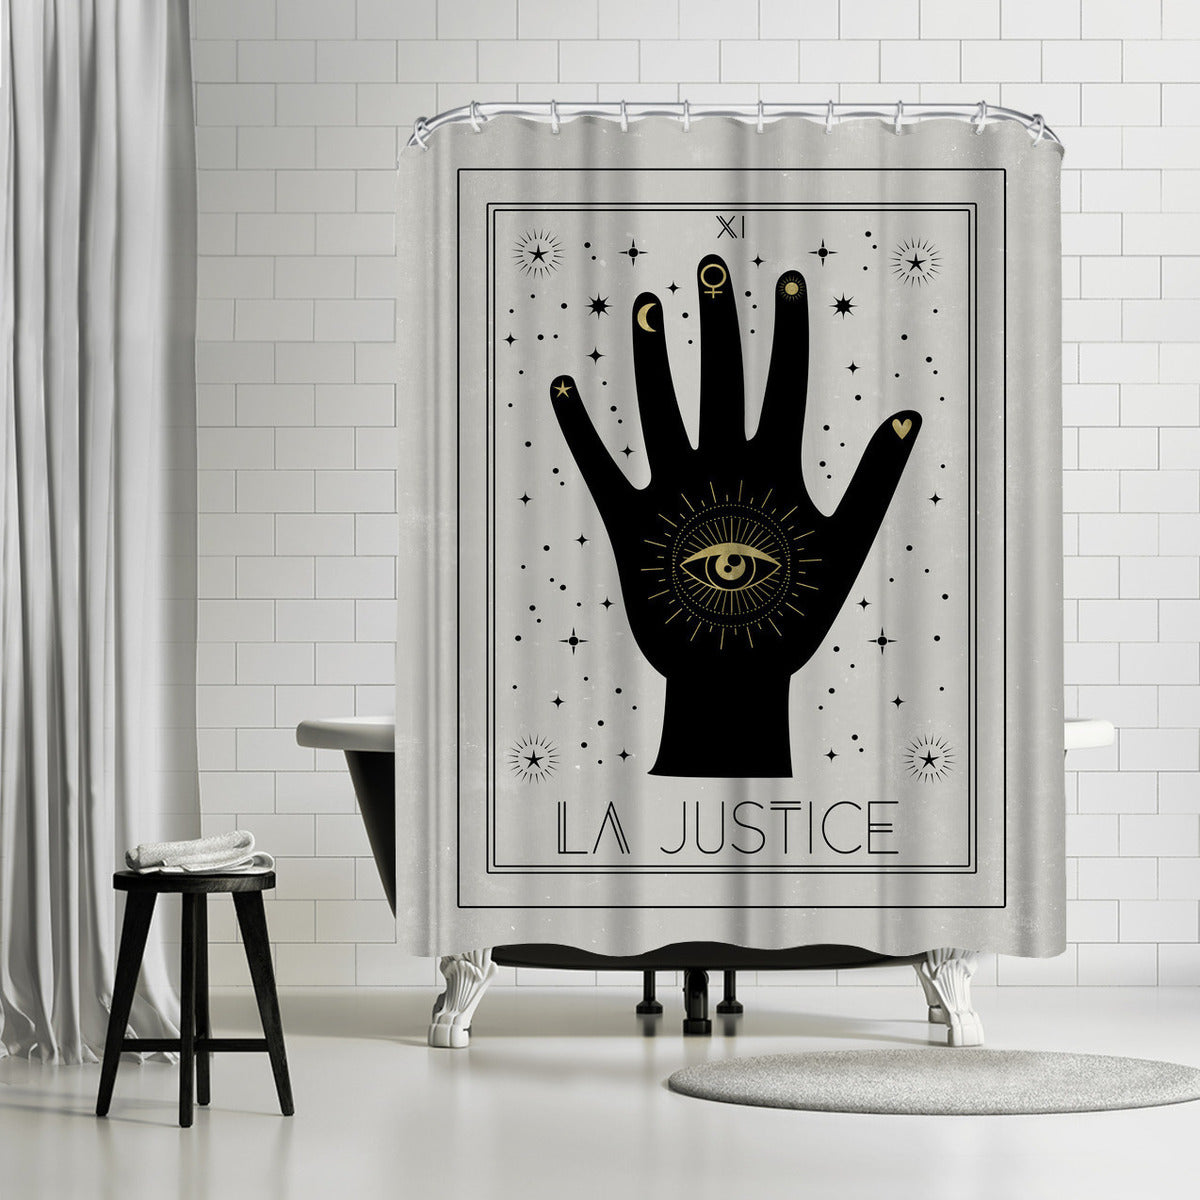 La Justice by Emanuela Carratoni Shower Curtain -  - Americanflat